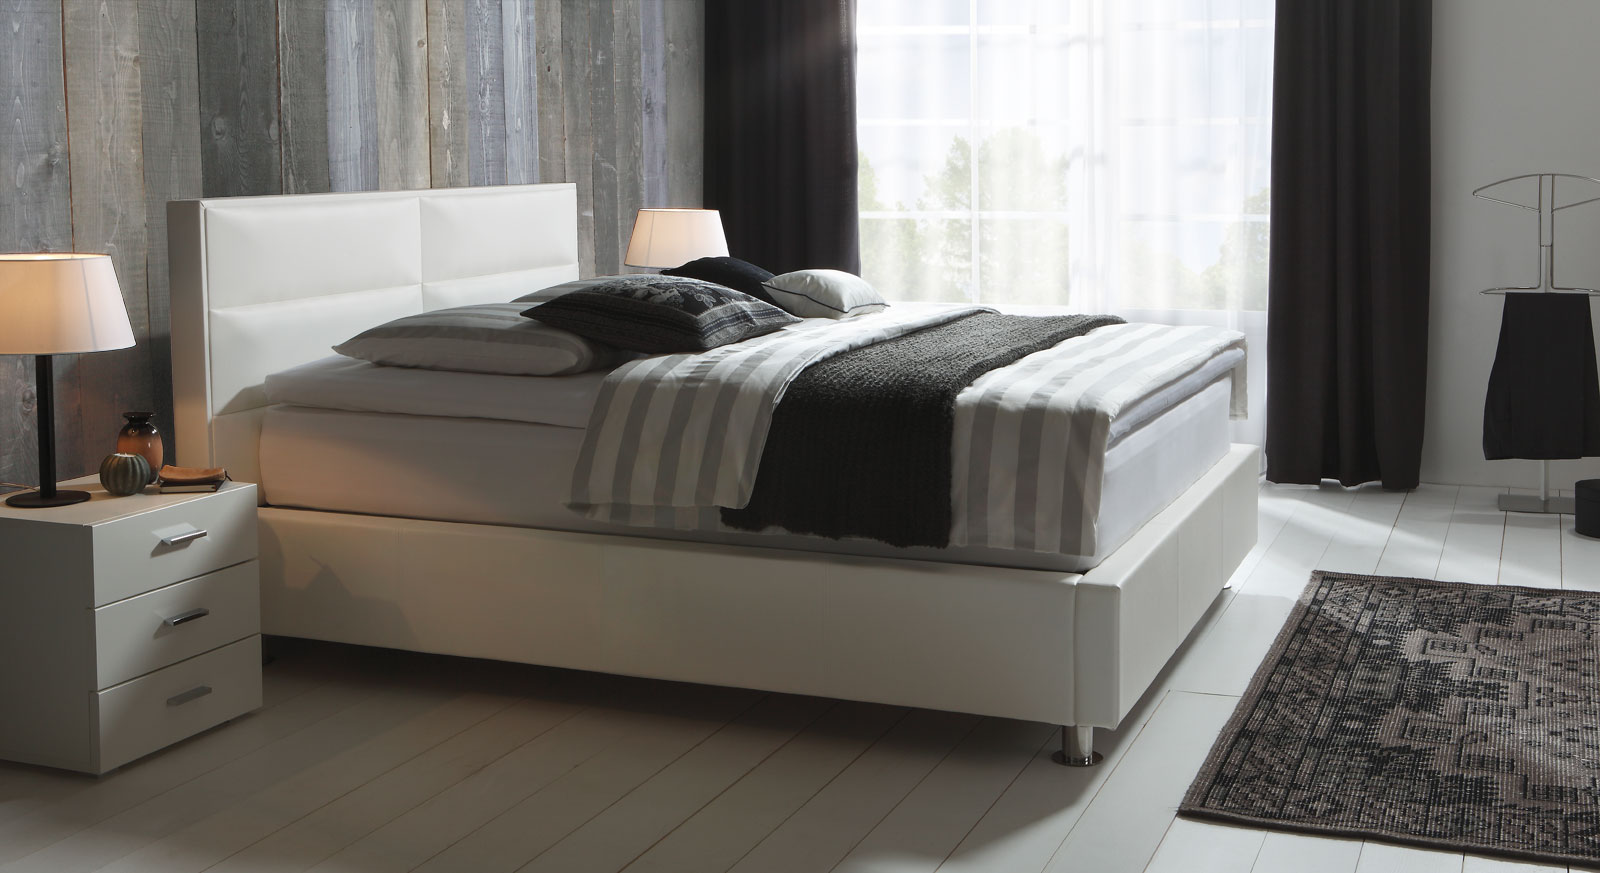 boxspringbett mit kunstleder bezug kopenhagen. Black Bedroom Furniture Sets. Home Design Ideas